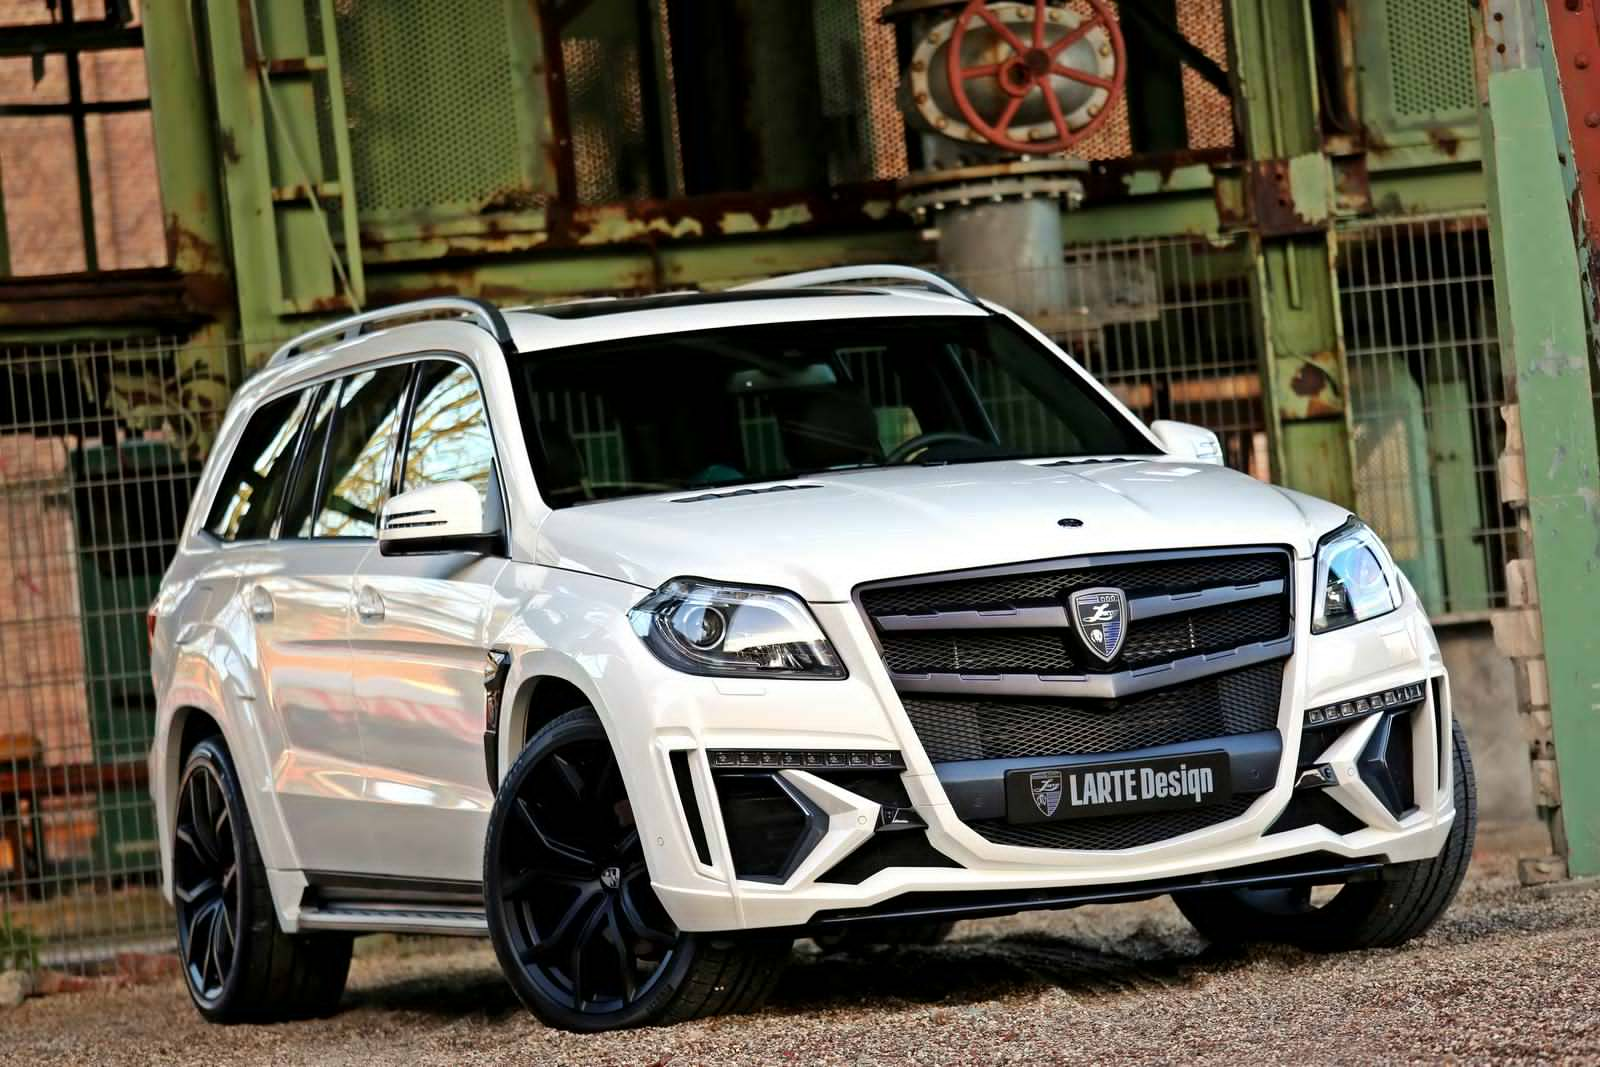 New Photos Of The Black Crystal Mercedes Benz Gl Released